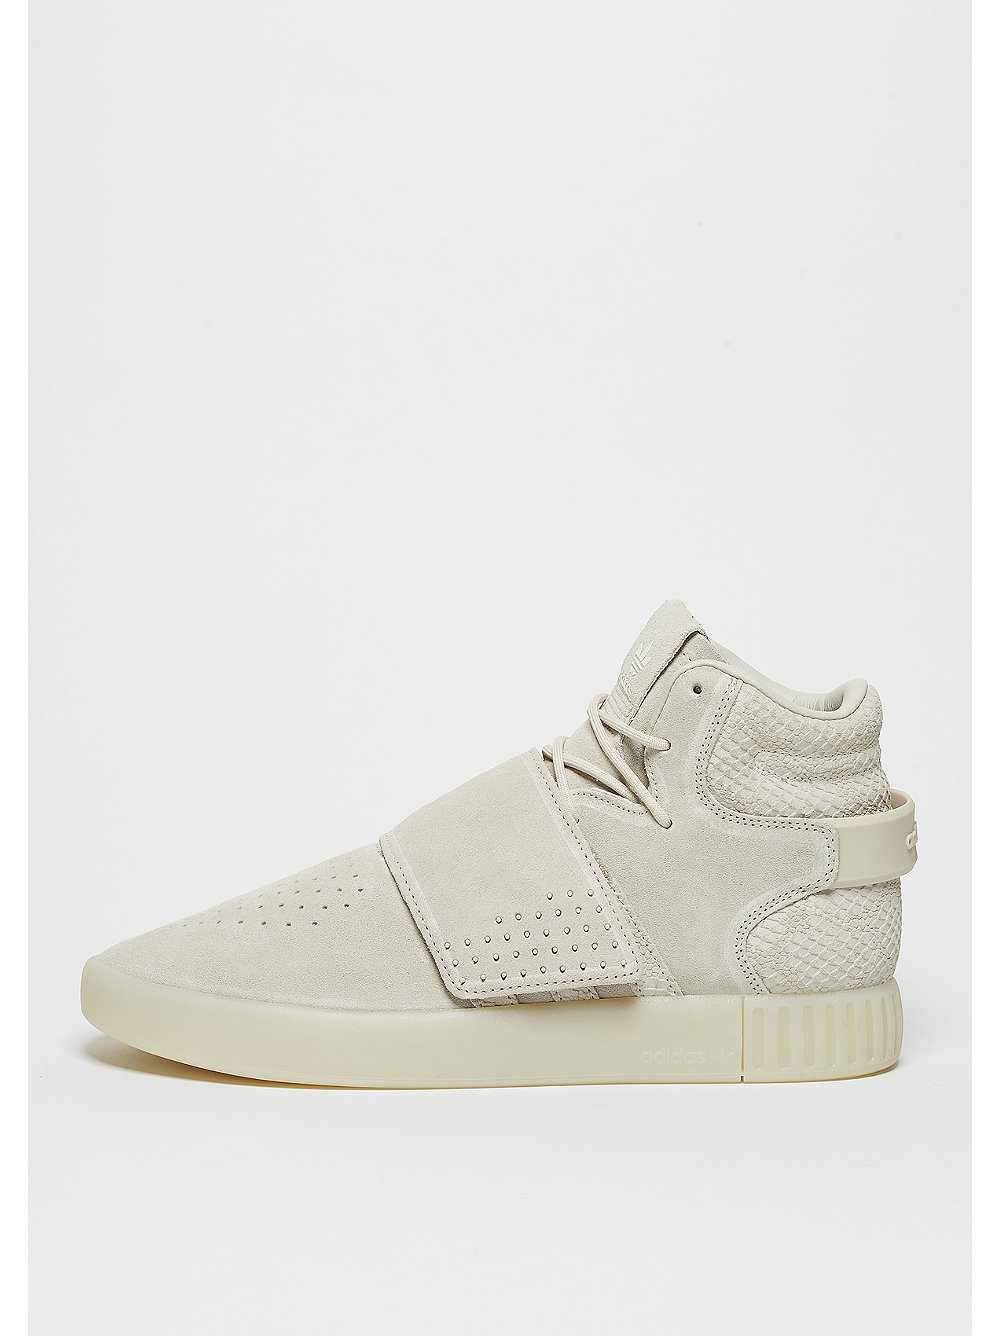 adidas Tubular Invader Strap clear brown-clear brown-chalk white